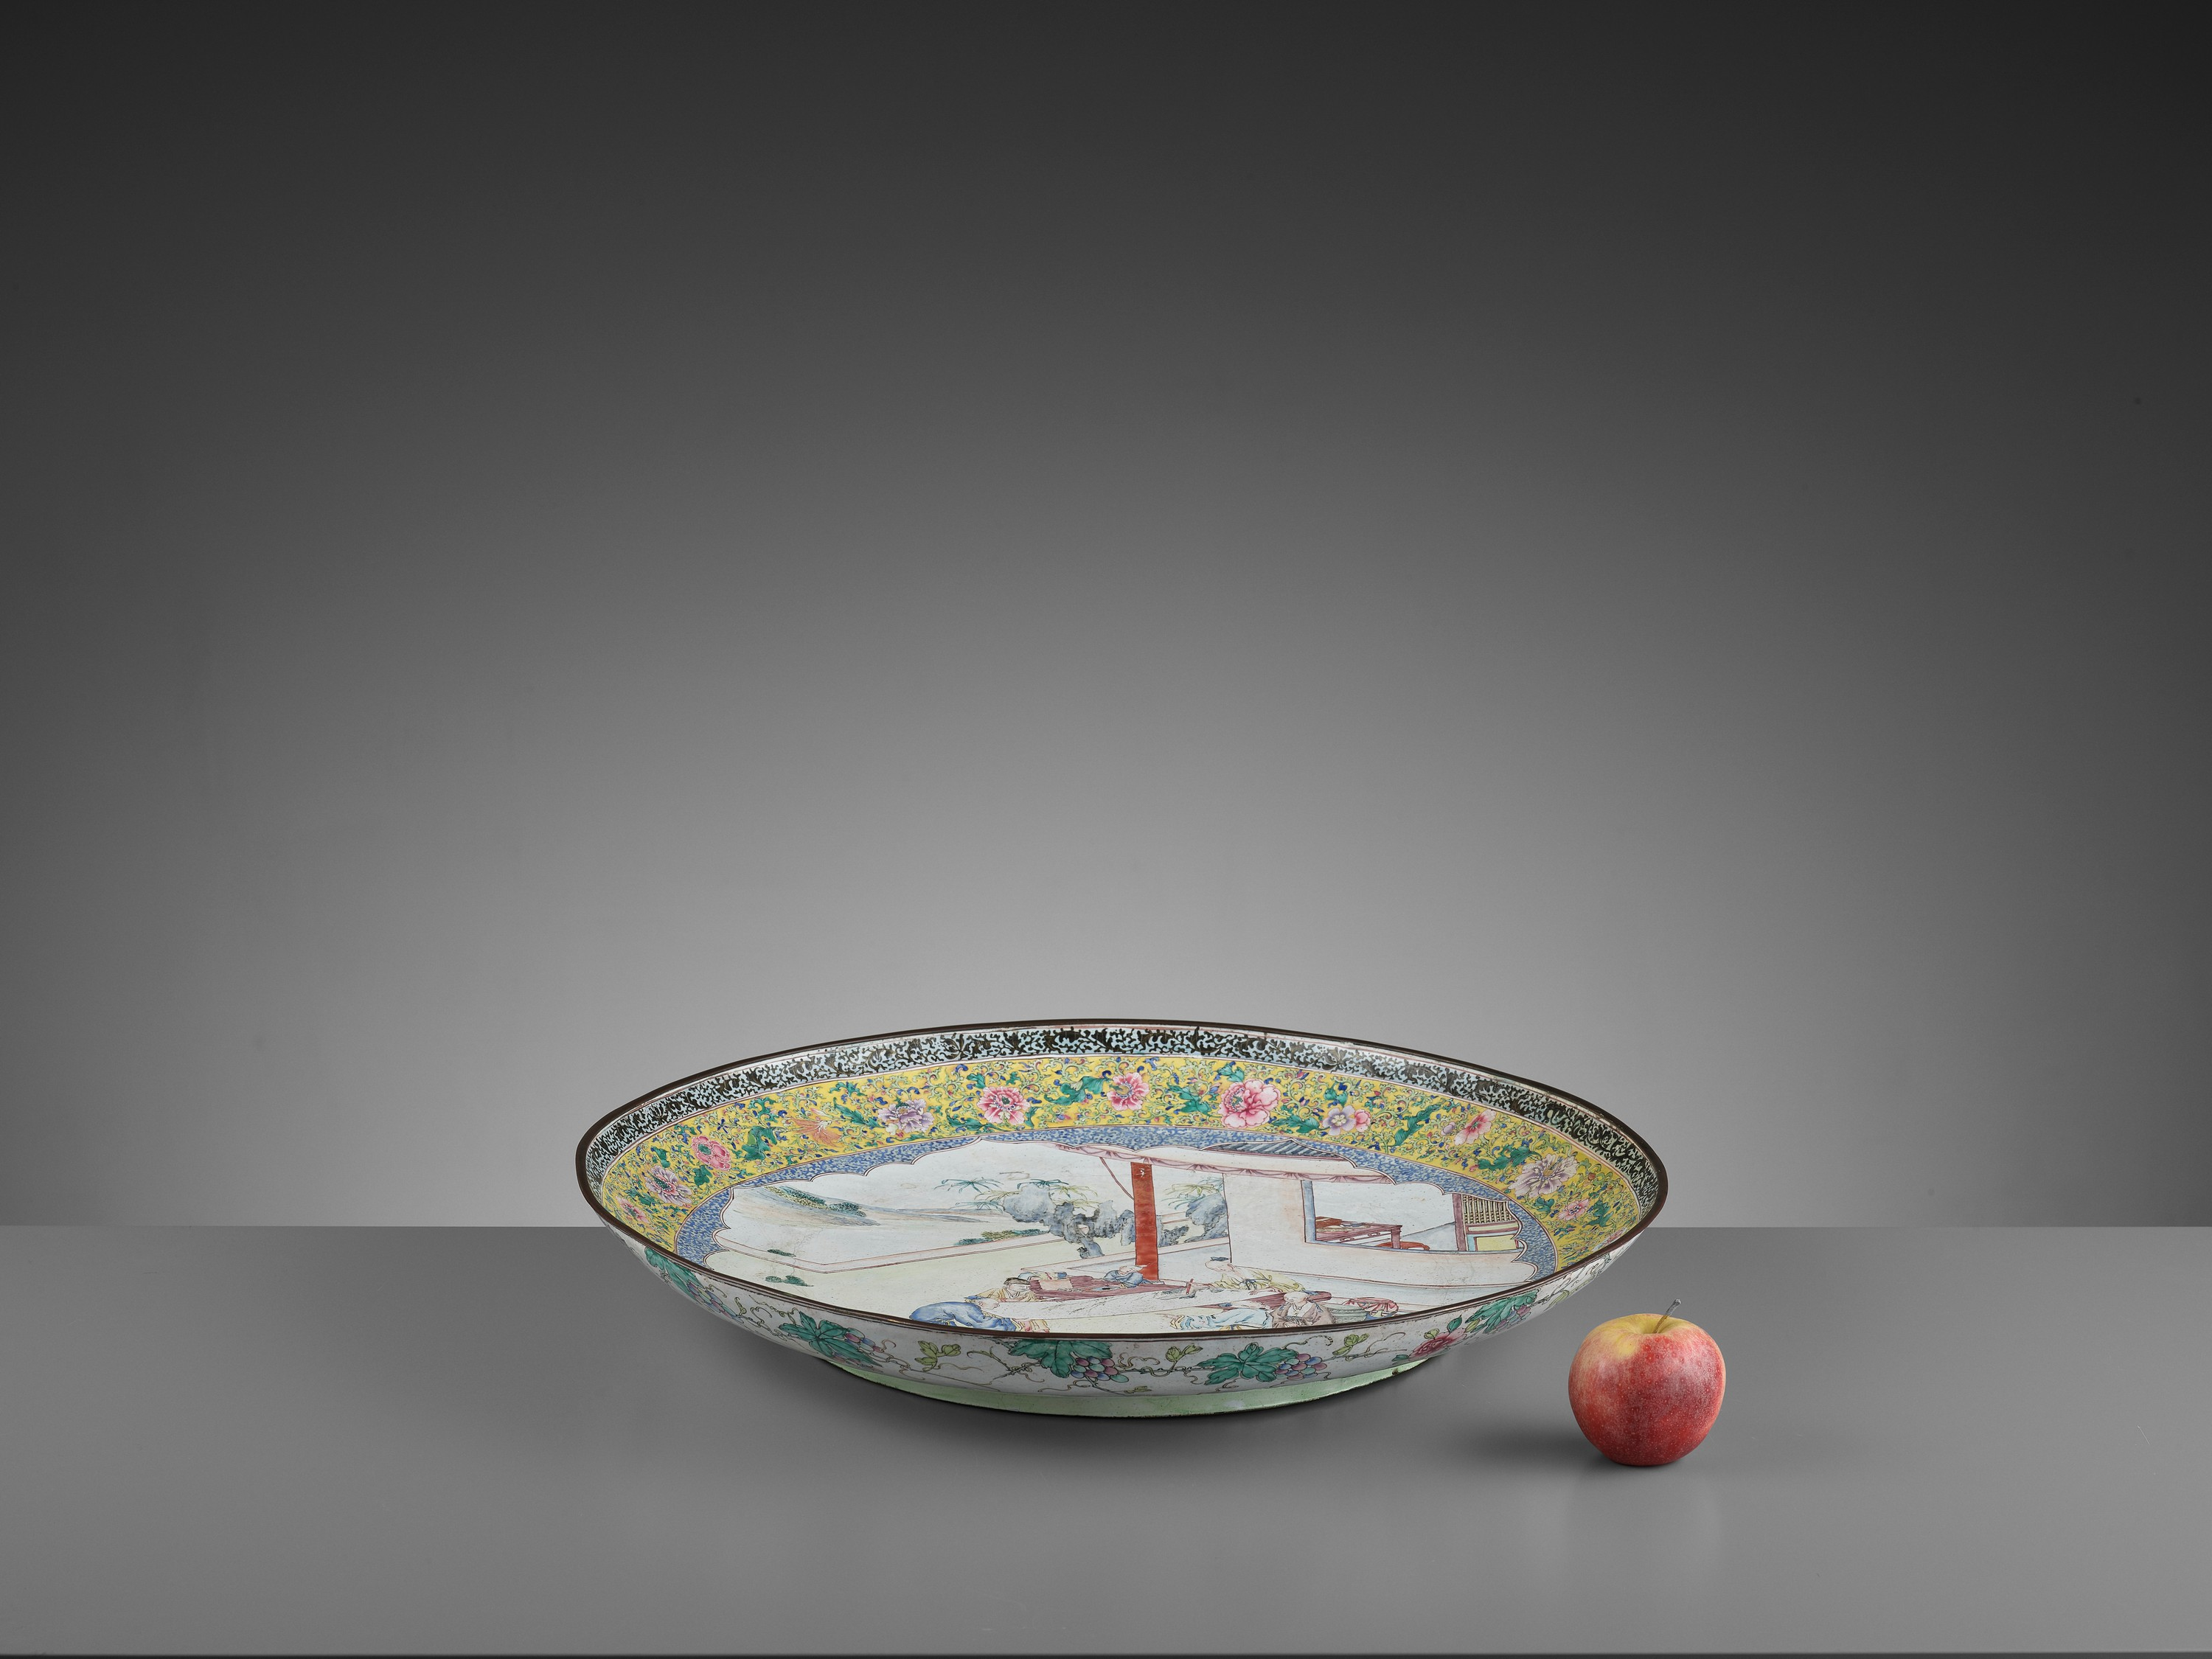 AN EXCEPTIONAL AND VERY LARGE CANTON ENAMEL 'SCHOLARS' DISH, EARLY 18TH CENTURY - Image 2 of 12